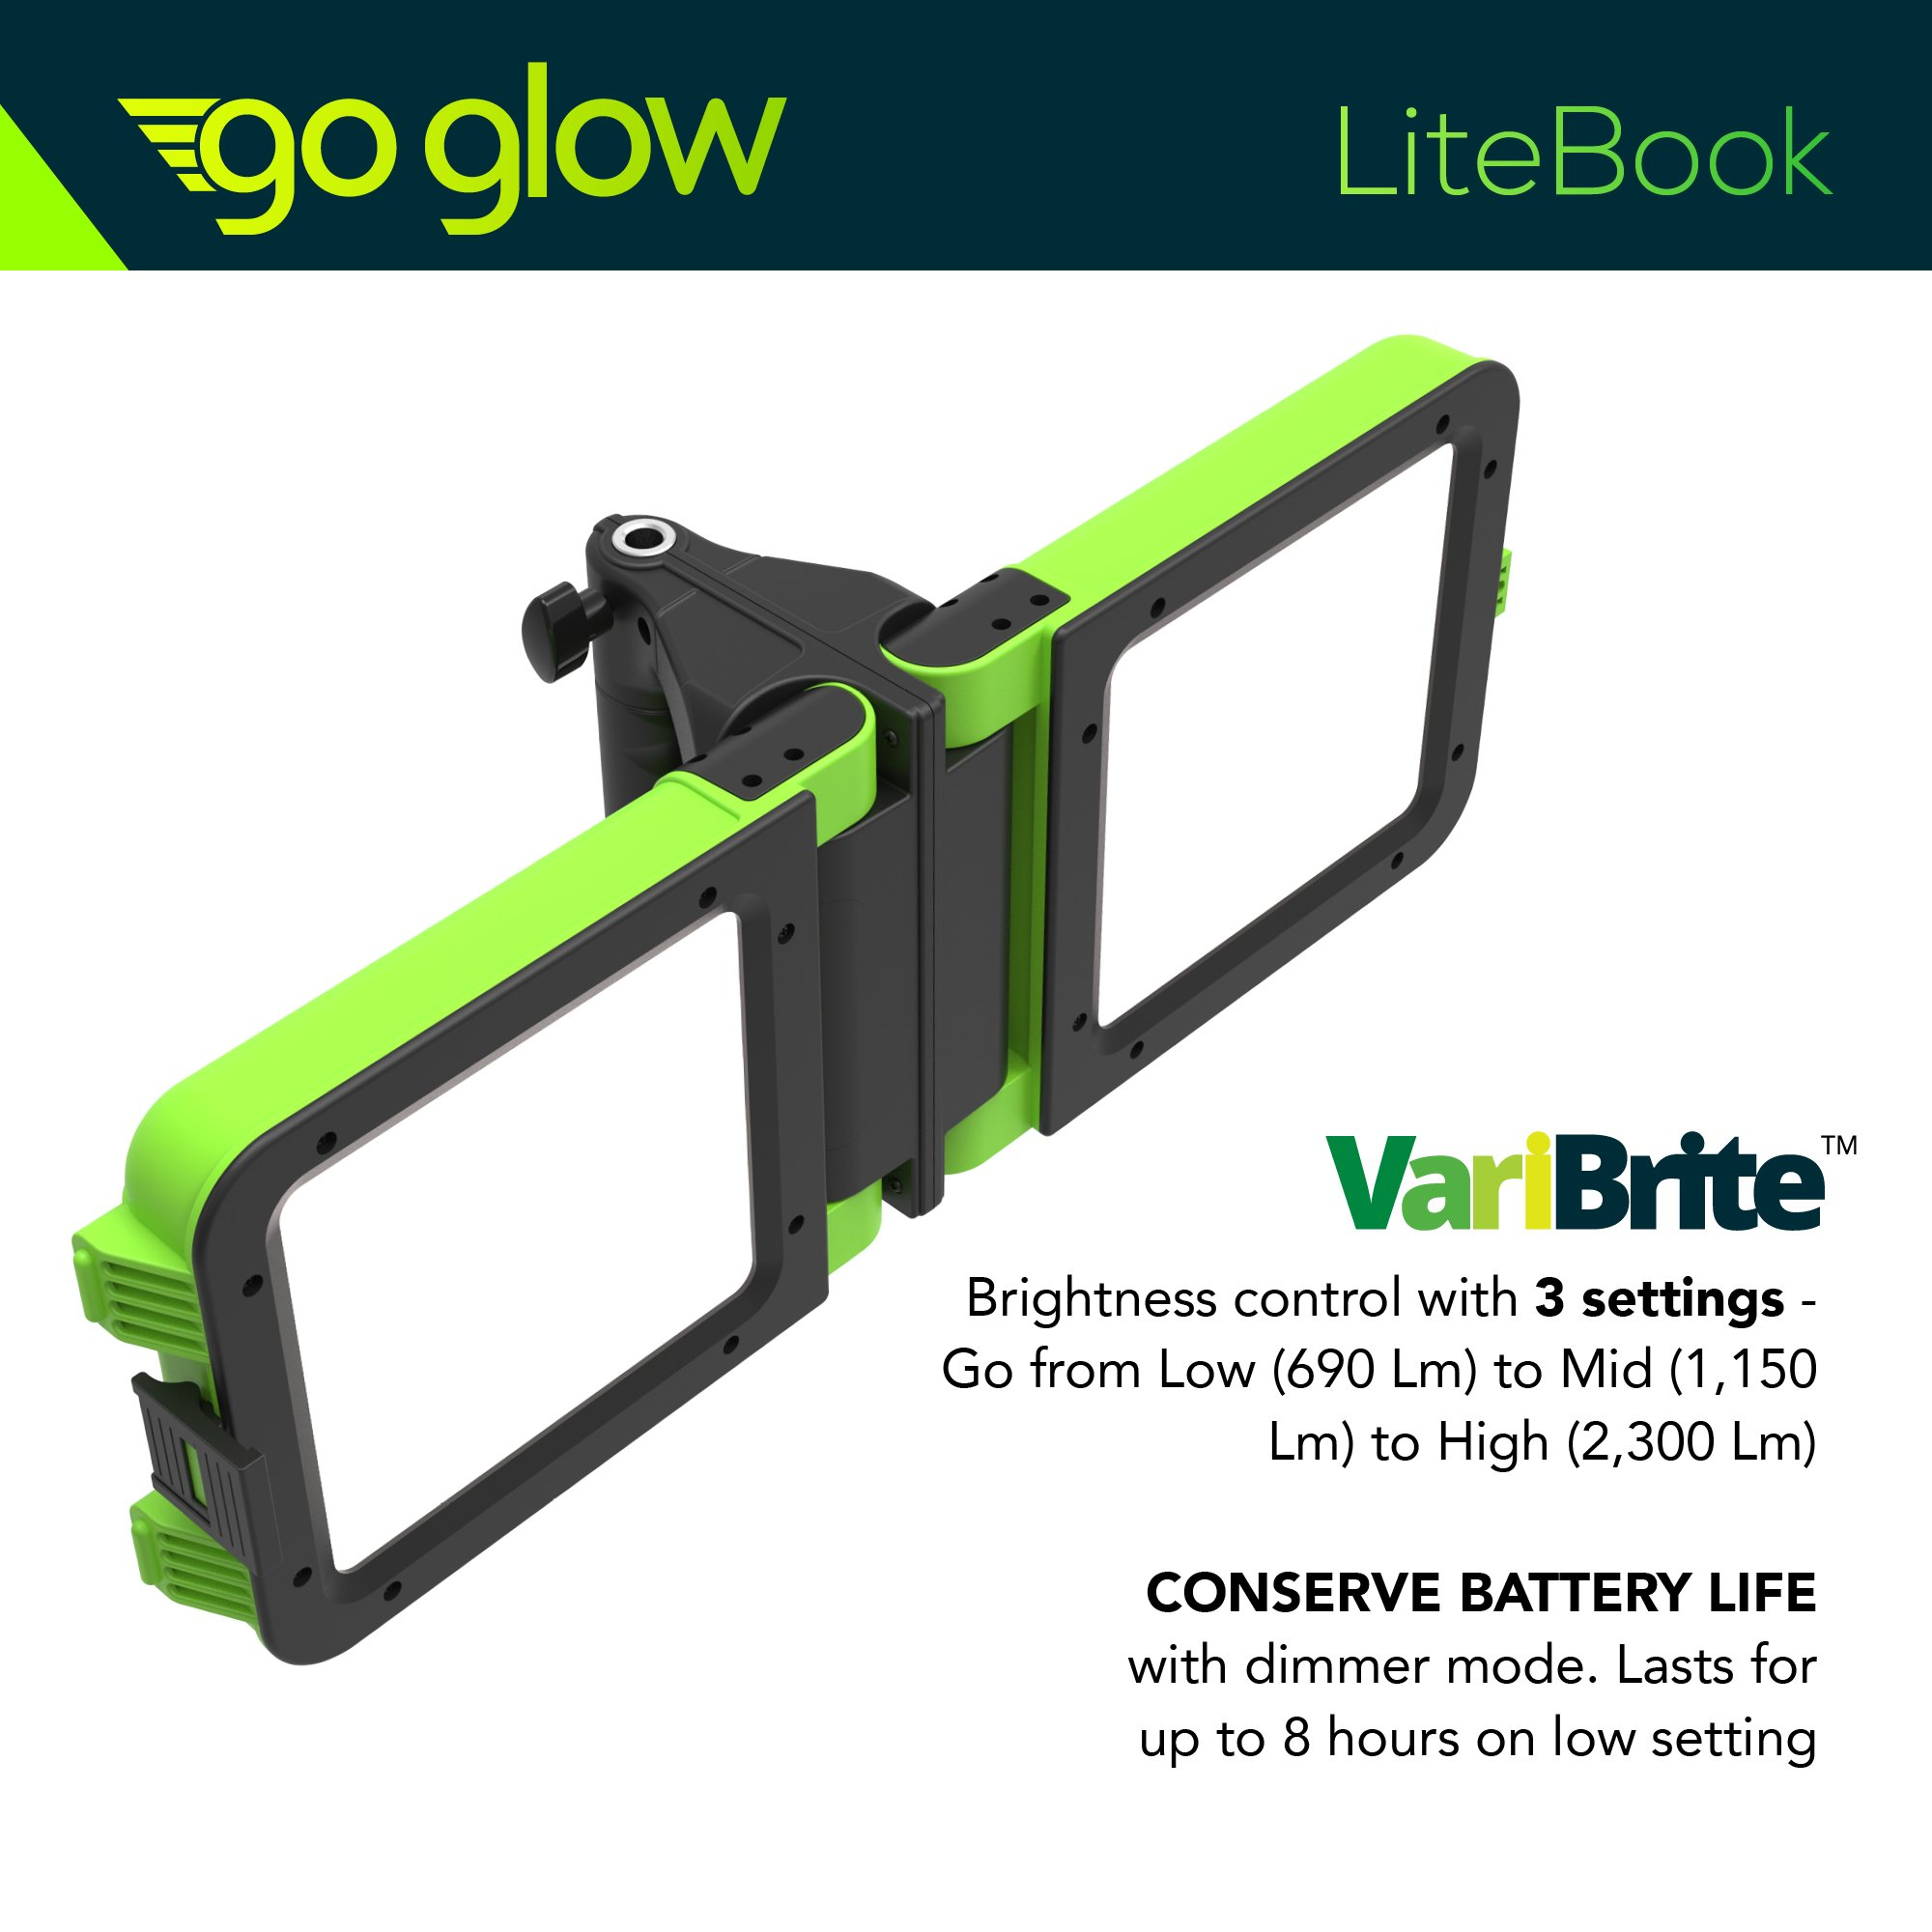 GoGlow LiteBook Bundle - Upgraded 2.0 TRIPOD INCLUDED - 30W Portable Rechargeable Day Light White Light (5000-5500k) Work Light, Camping, Garage or Auto Repair, Emergency (Green) by Enpower (Image #8)